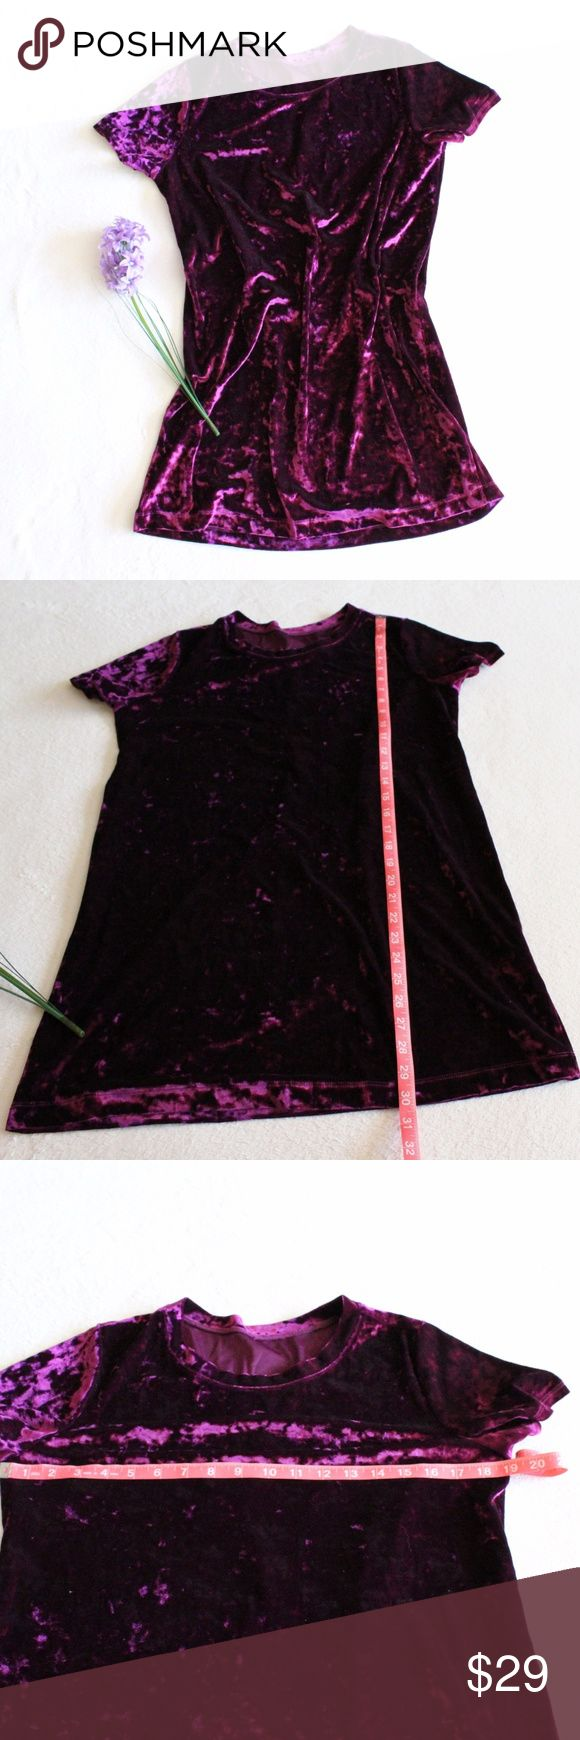 NEW Purple Velvet T-Shirt Dress New purple crushed velvet t-shirt dress. This would look so rad with thigh high boots!! Soft and super comfy.  Please see photos for measurements.   Feel free to make an offer via offer button only. NO TRADES Boutique Dresses Mini